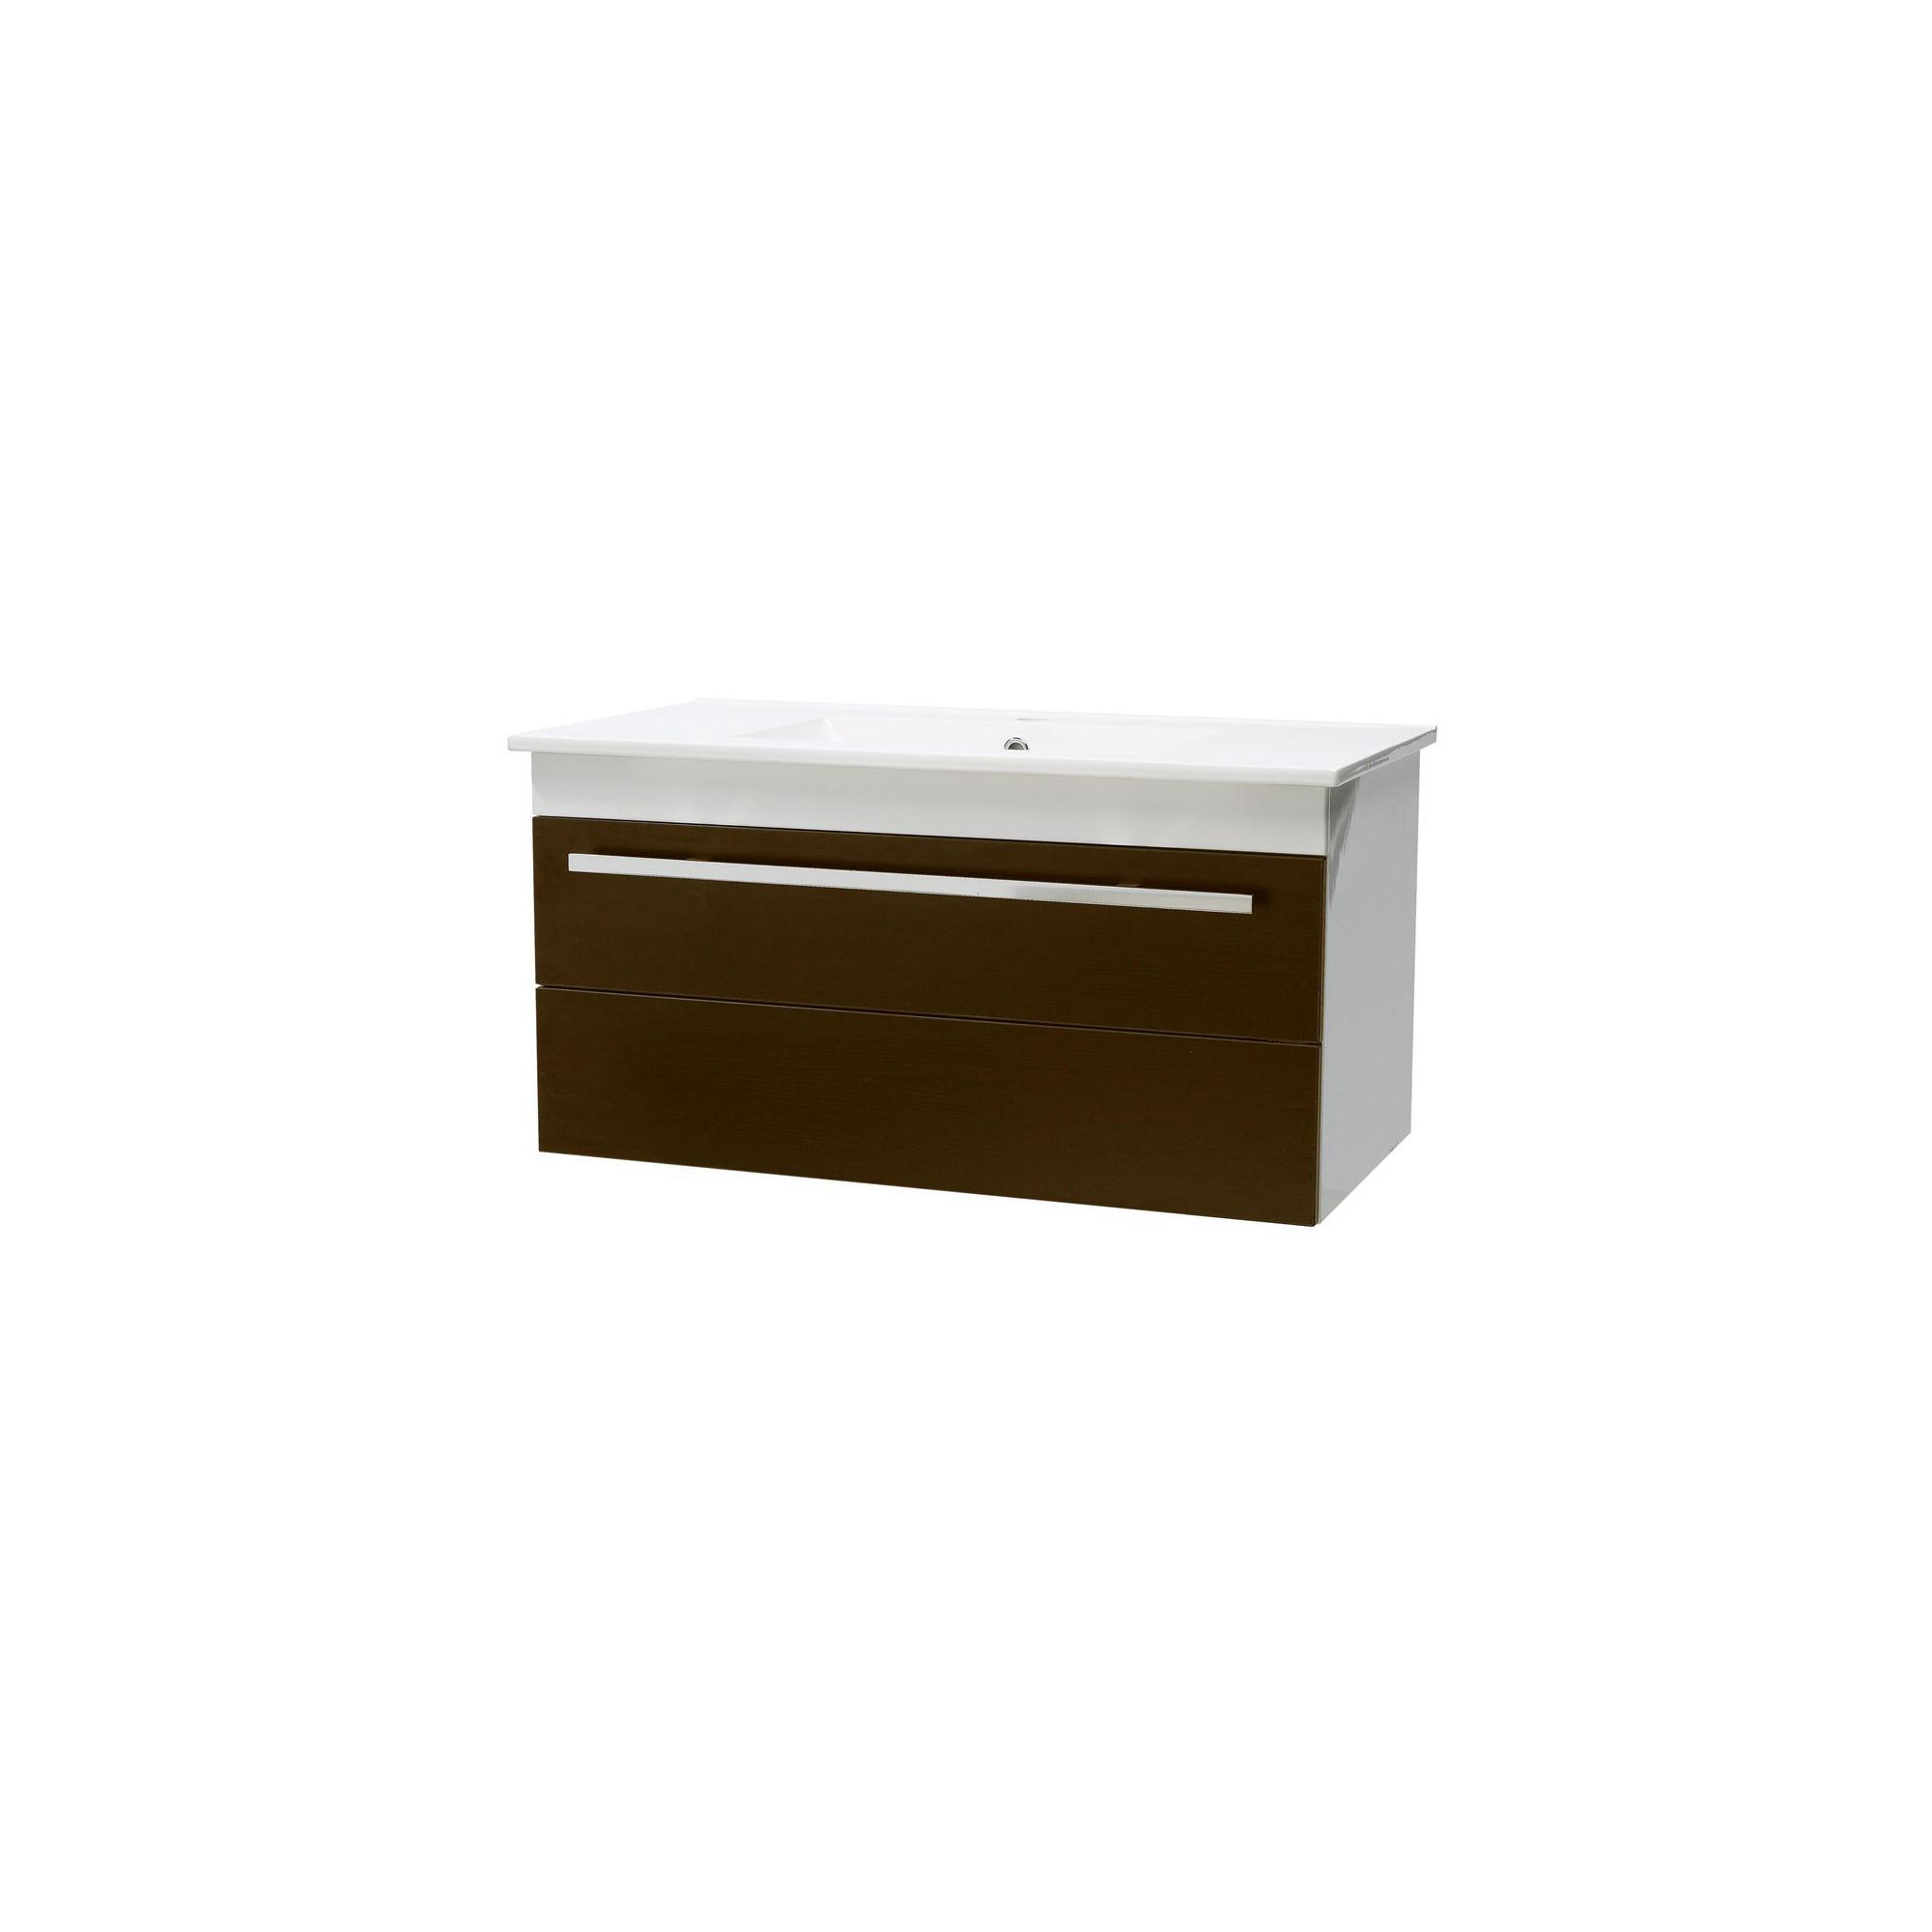 Ultra Design Ebony Brown Wall Mounted Unit with Ceramic Basin 450mm Height x 800mm Width x 400mm Deep